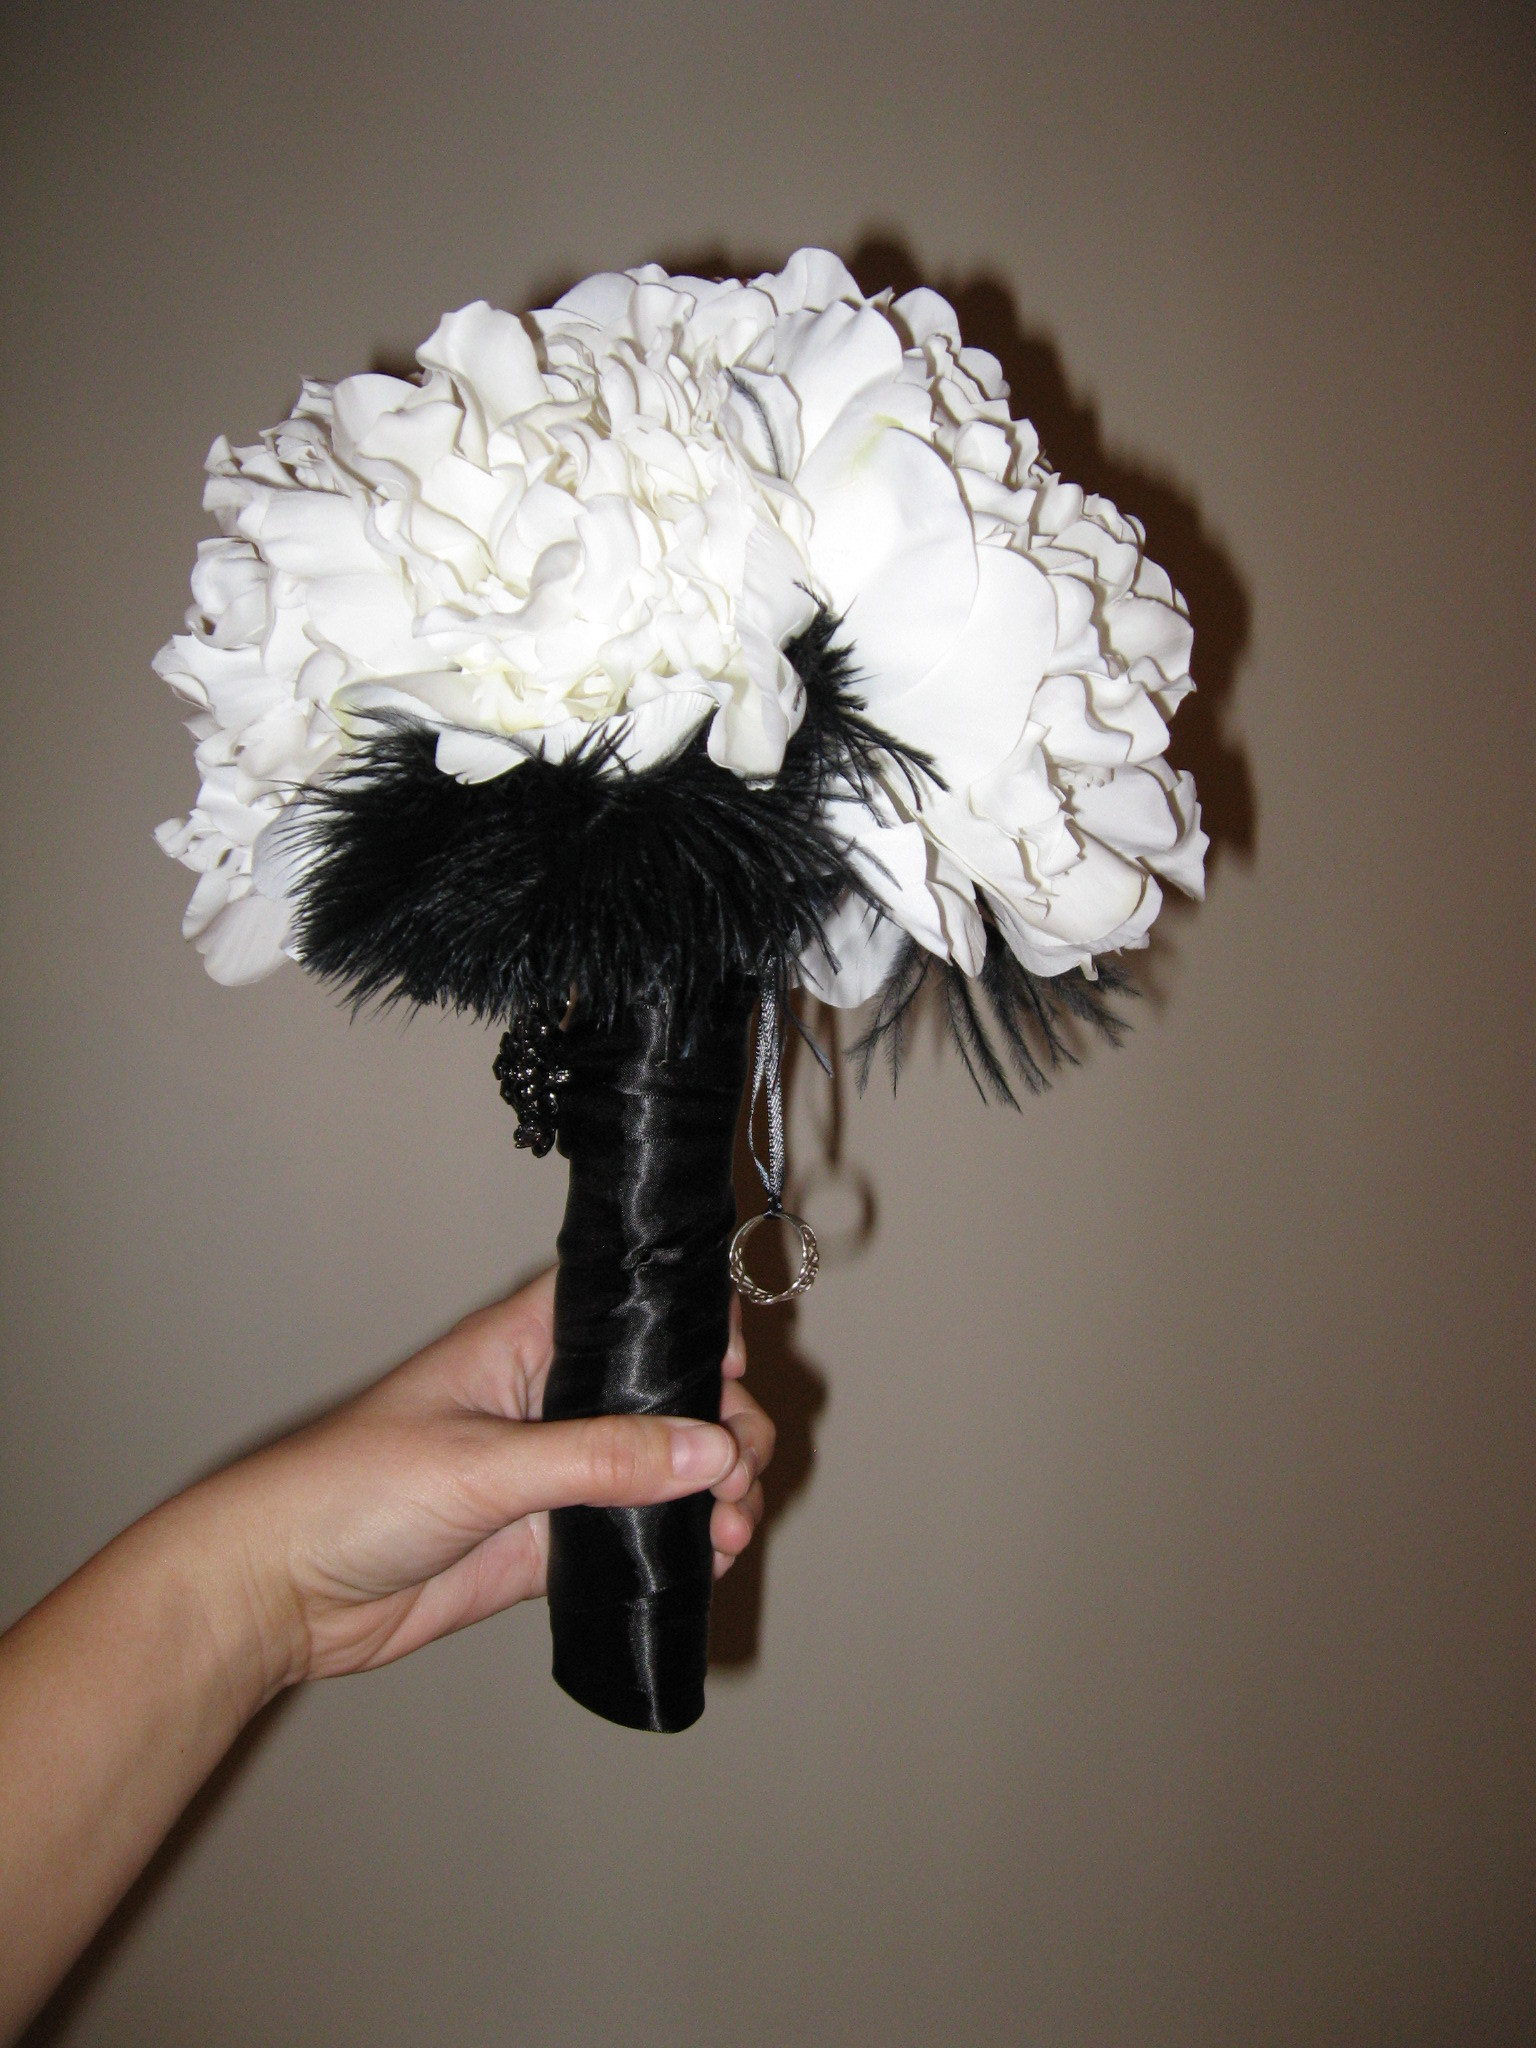 Beauty, DIY, white, black, Feathers, Bouquet, Damask, Feather